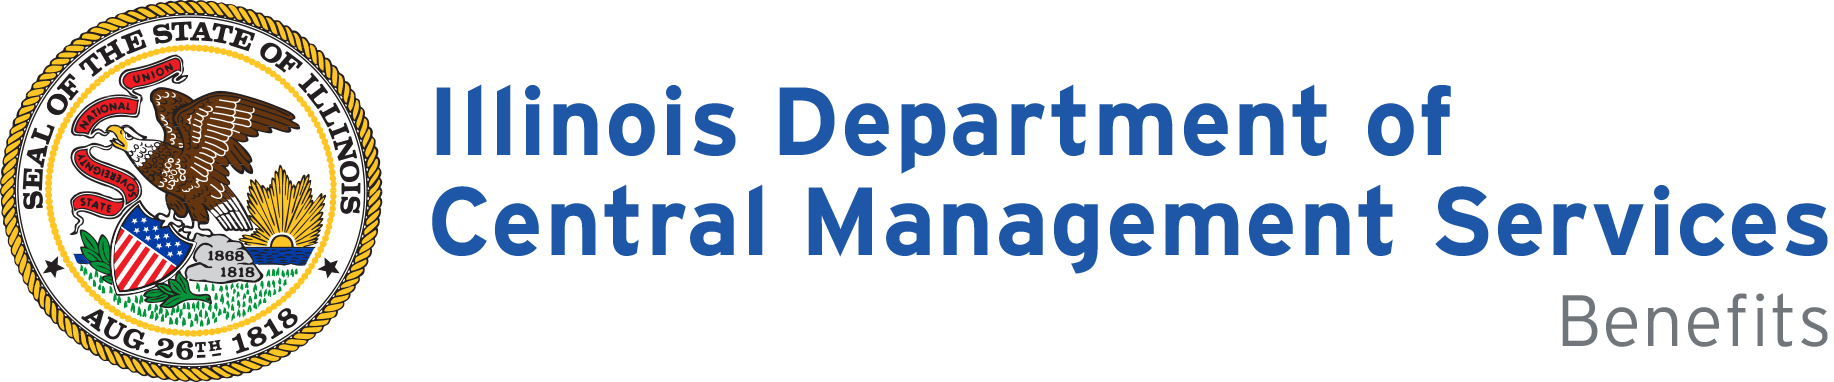 Illinois Department of Central Management Services